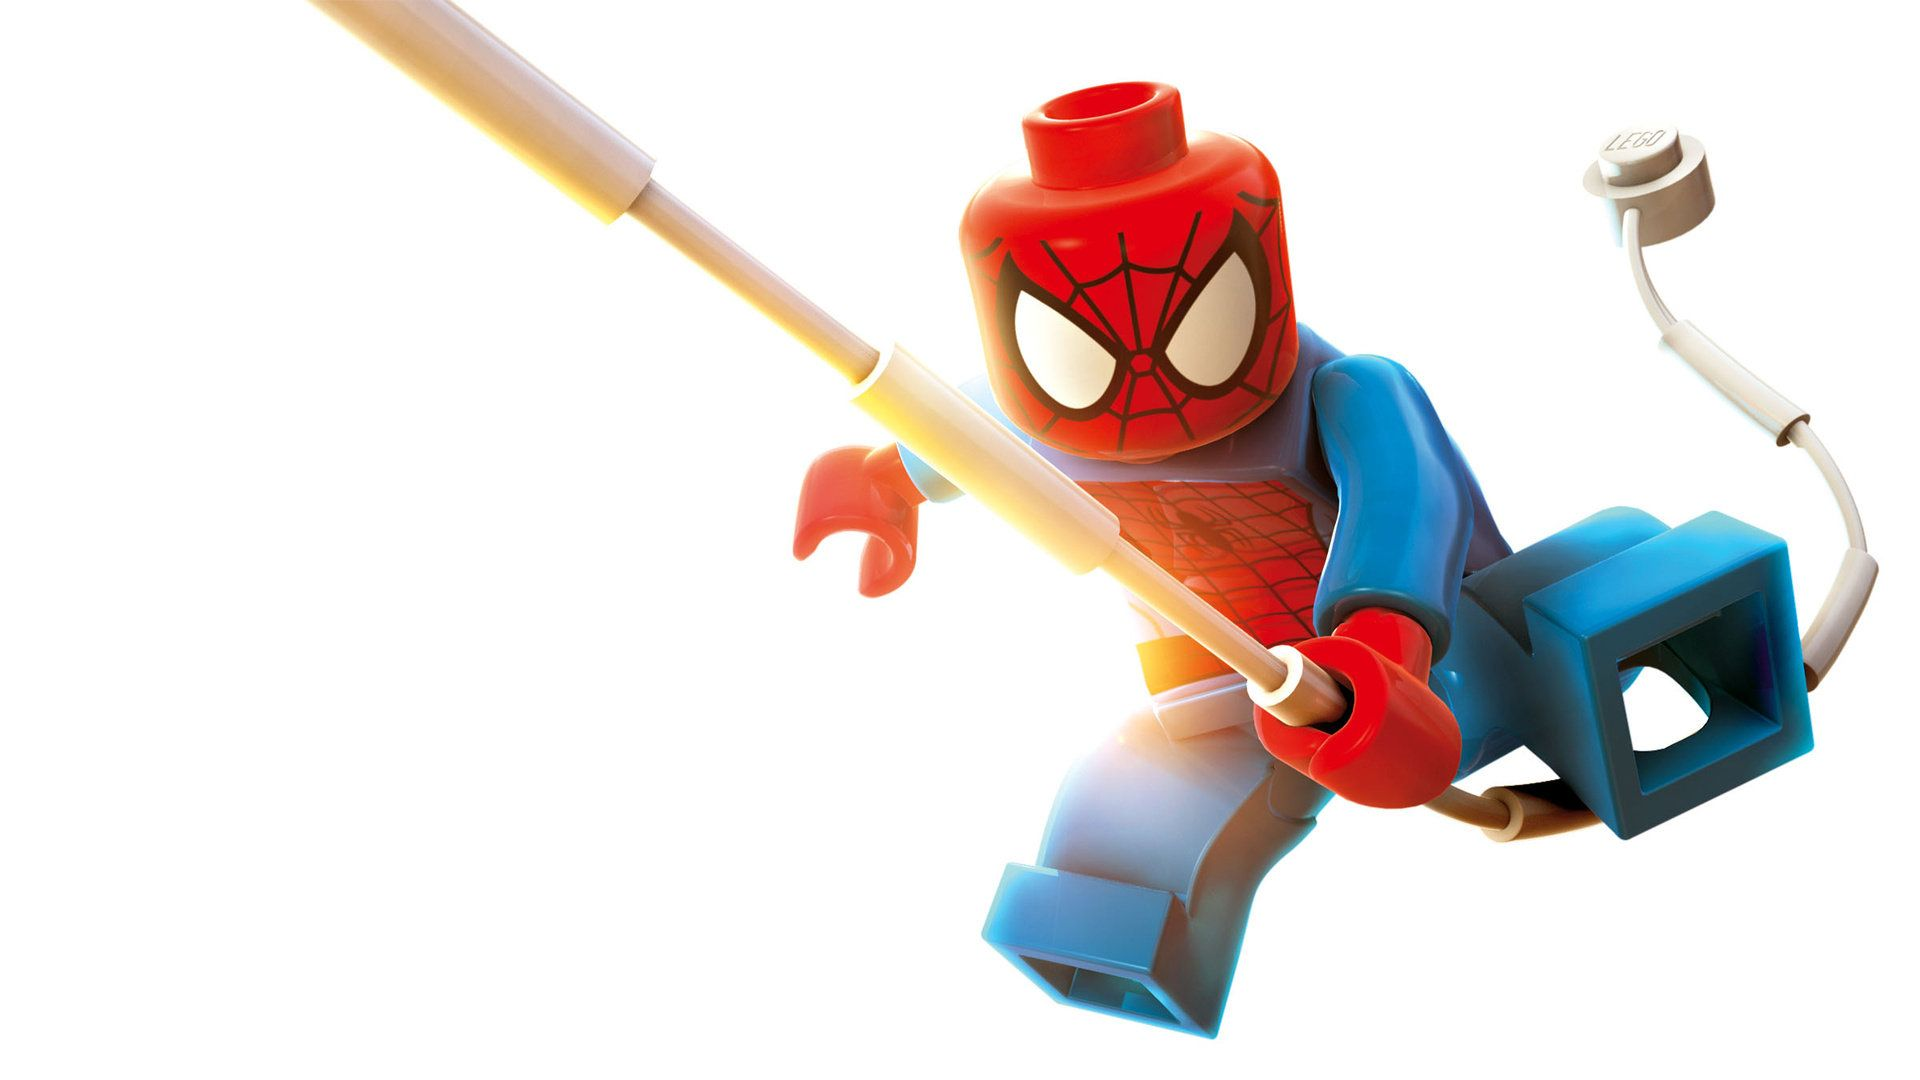 Lego marvel spiderman cool wallpaper hdg 19201080 awesome lego marvel spiderman cool wallpaper hdg 1920 voltagebd Choice Image